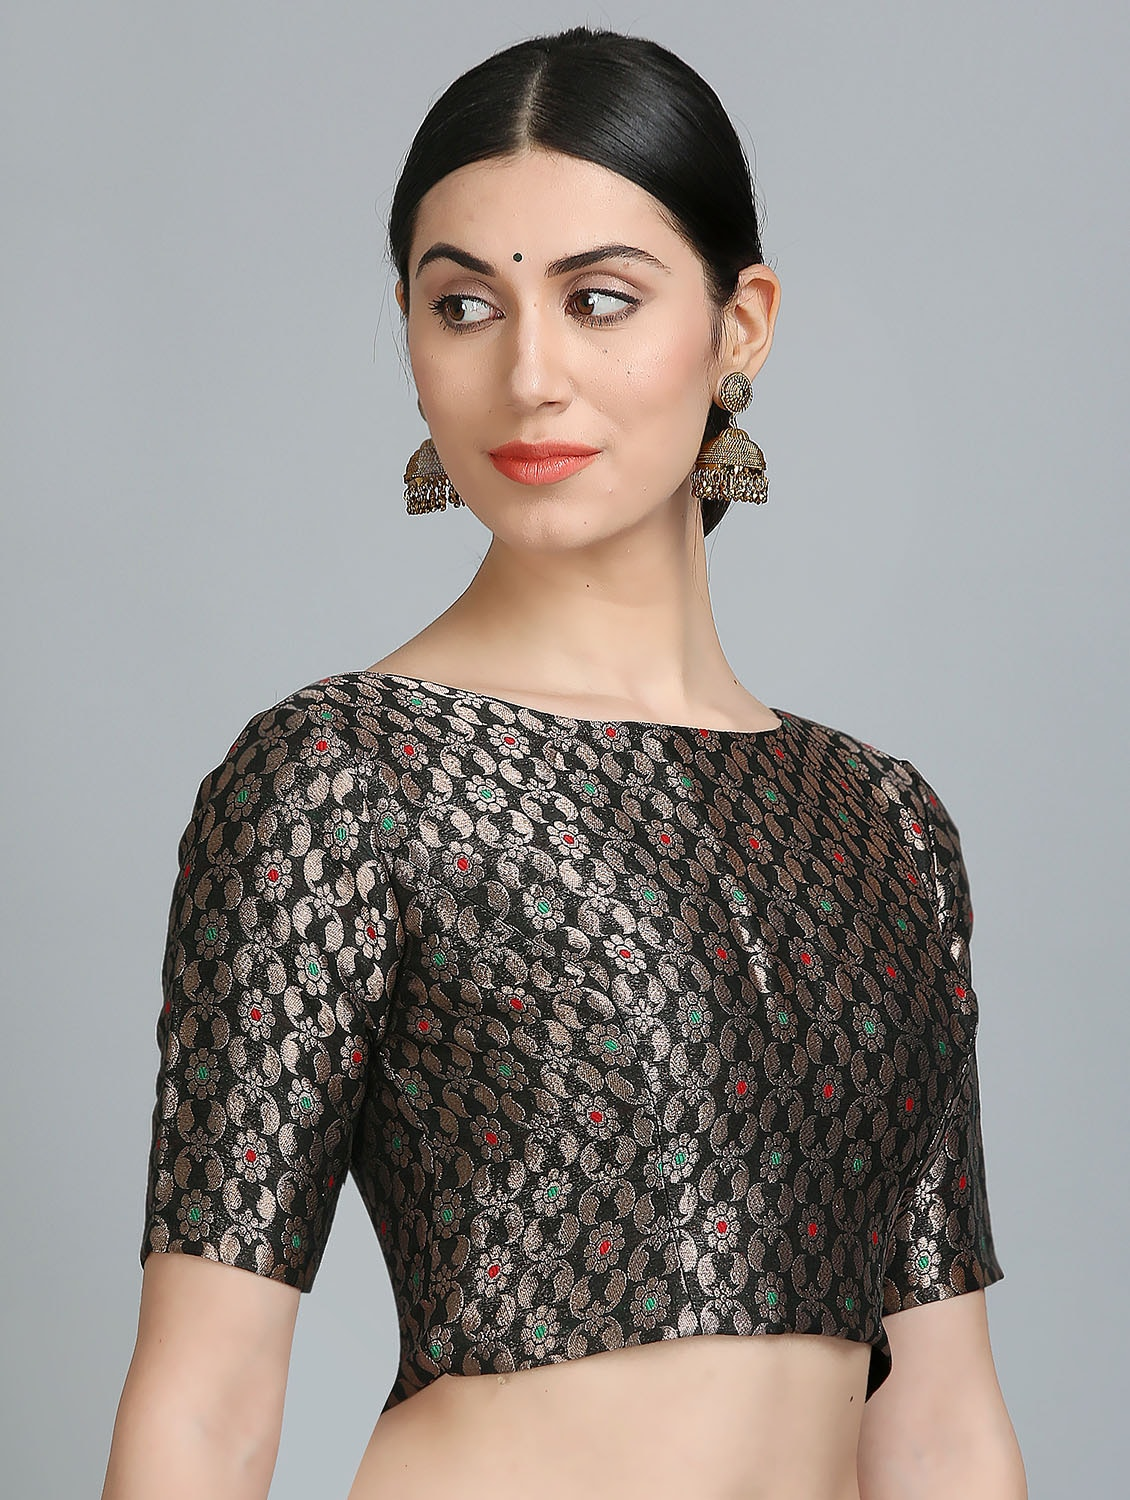 2c1407aa66cce Buy Kaanchie Nanggia Black Brocade Stitched Blouse for Women from Kaanchie  Nanggia for ₹1975 at 21% off